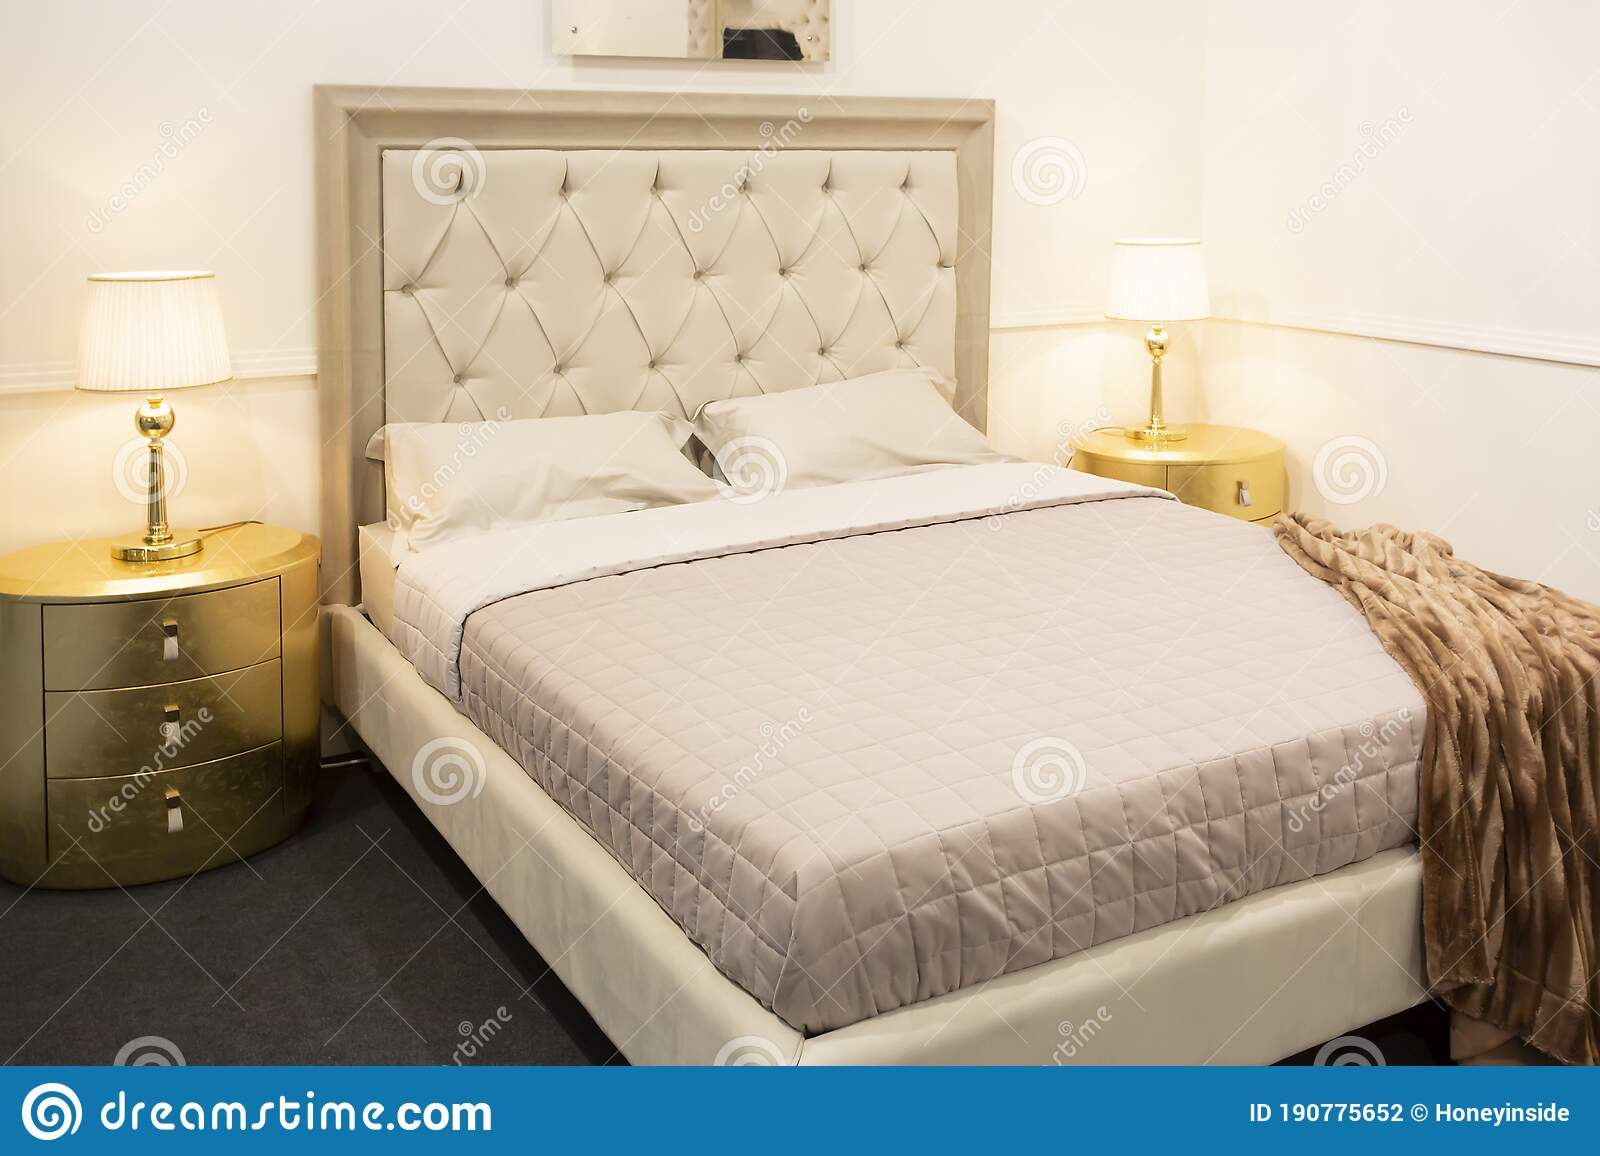 Luxury Bedroom Interior With Royal Bed With Golden Elements Stock Photo Image Of Home Bedside 190775652